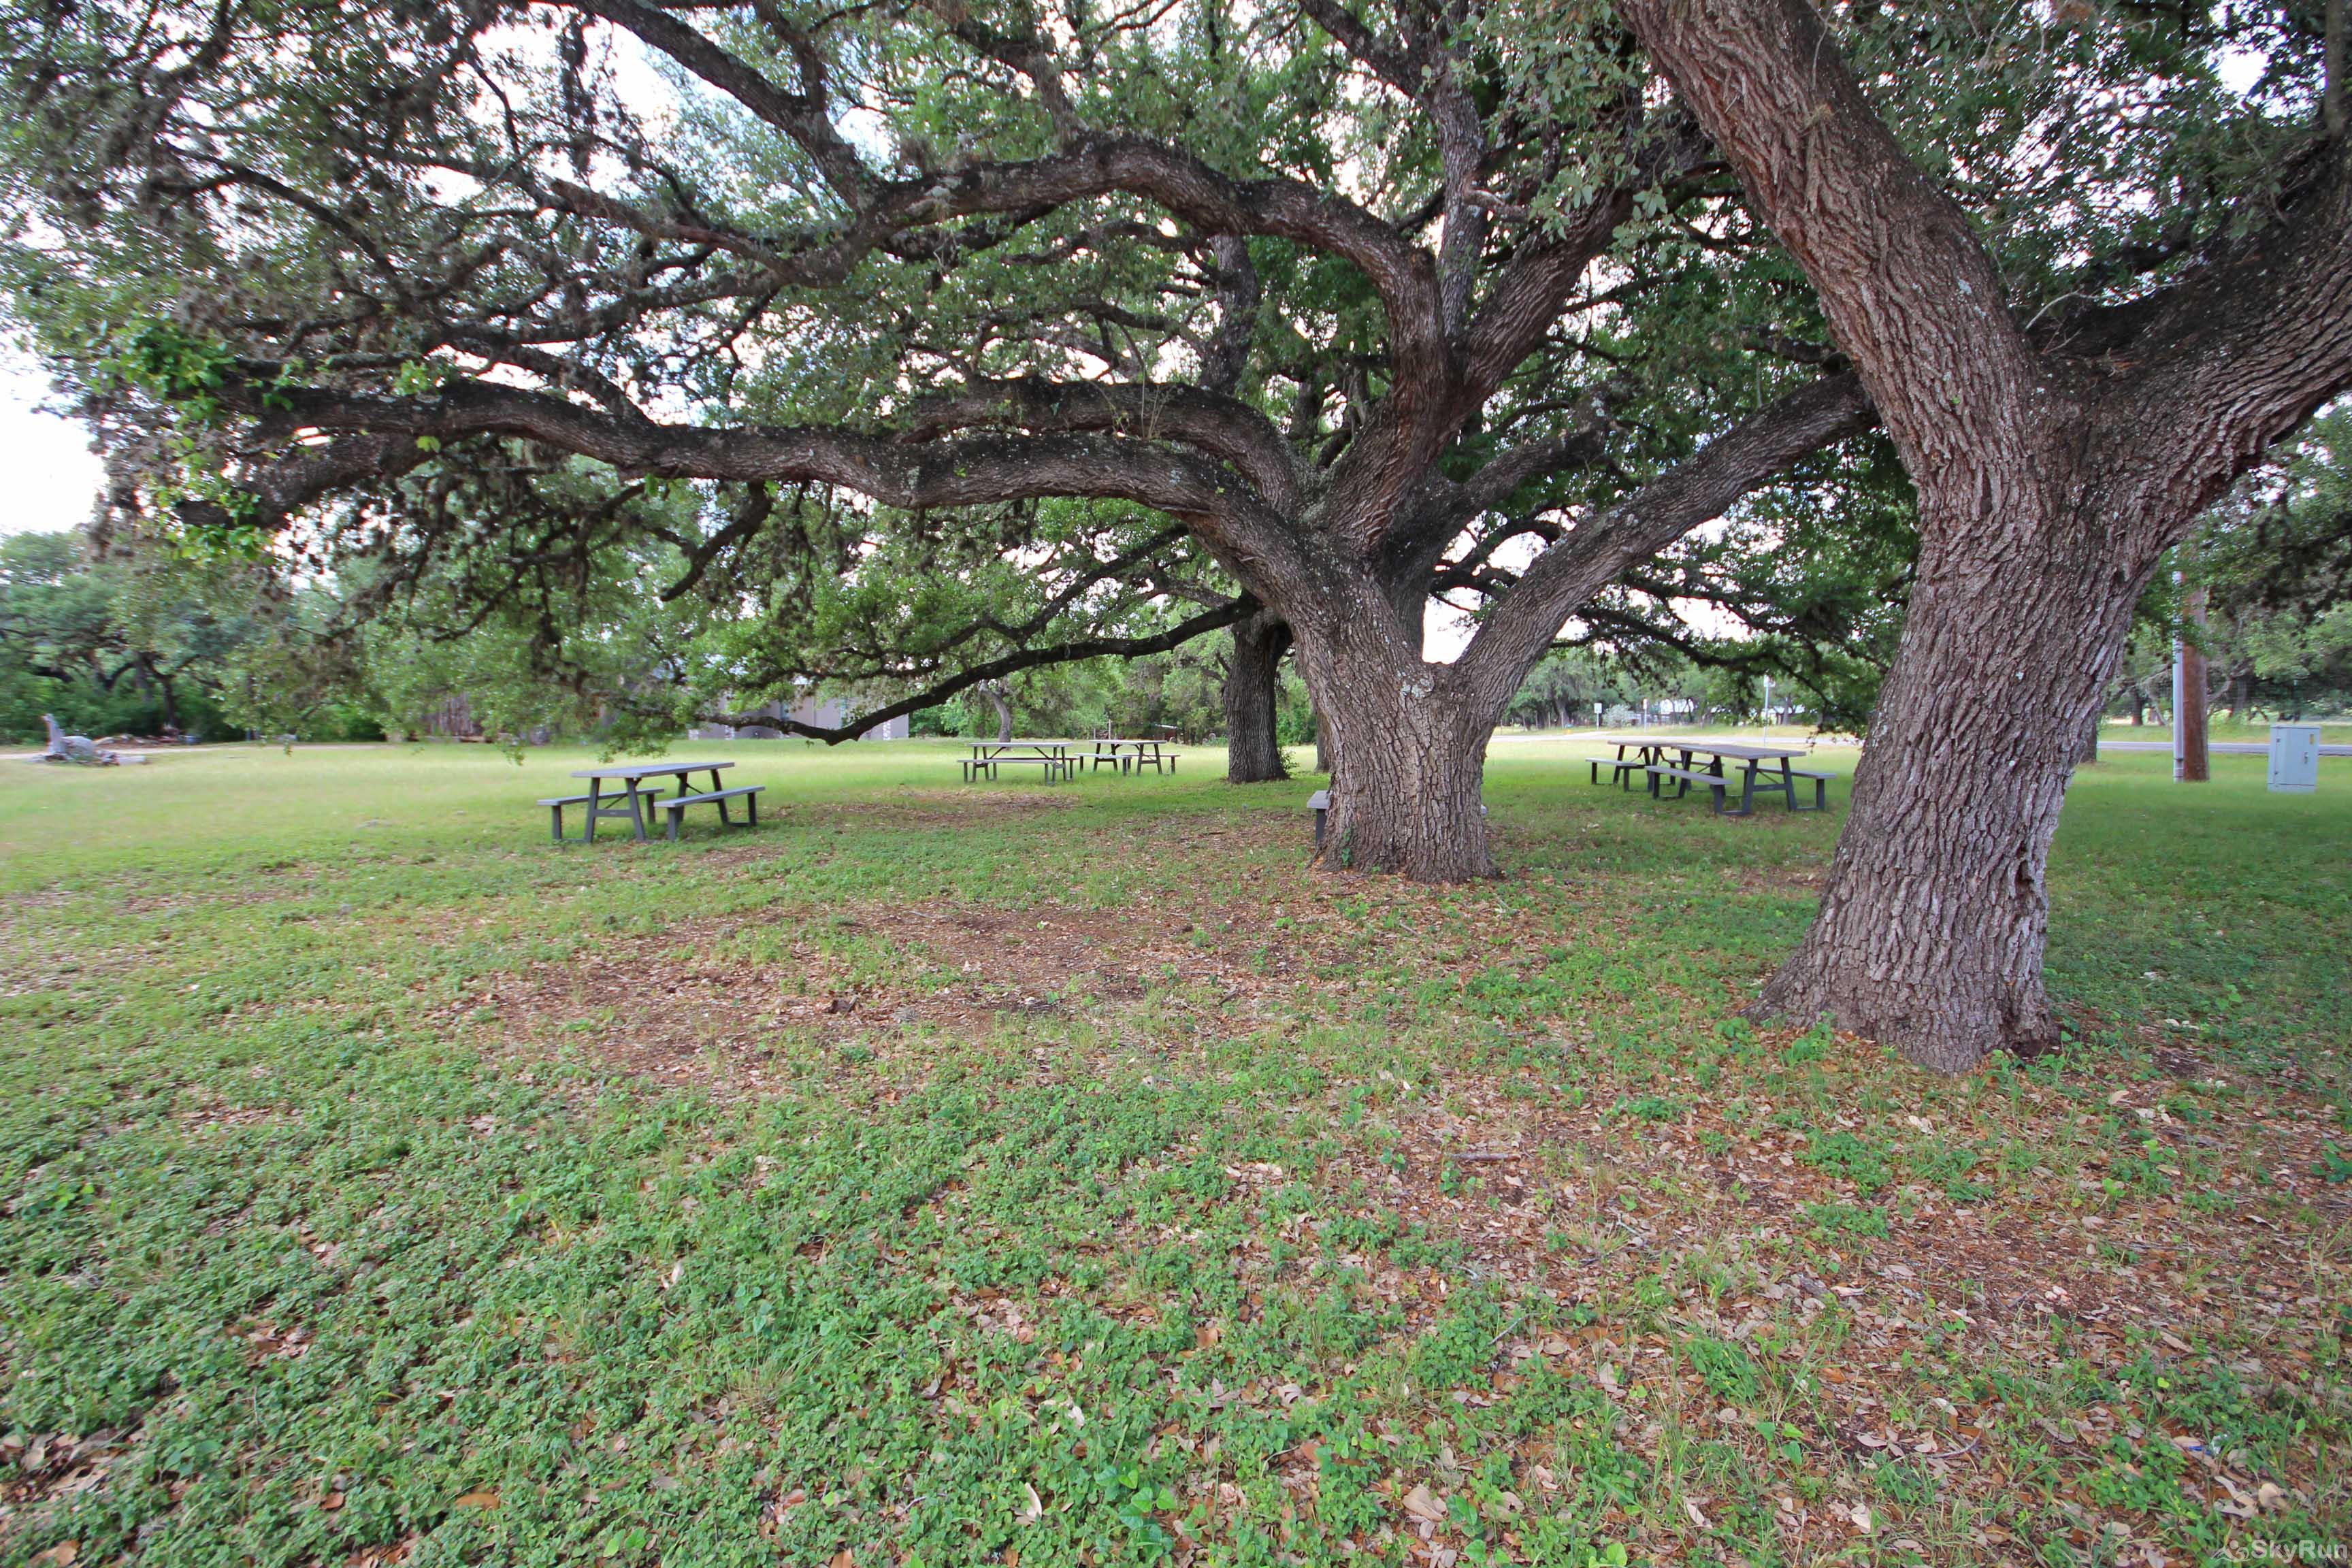 GNARLY GOAT HOUSE Picnic Area Under the Ancient Oaks